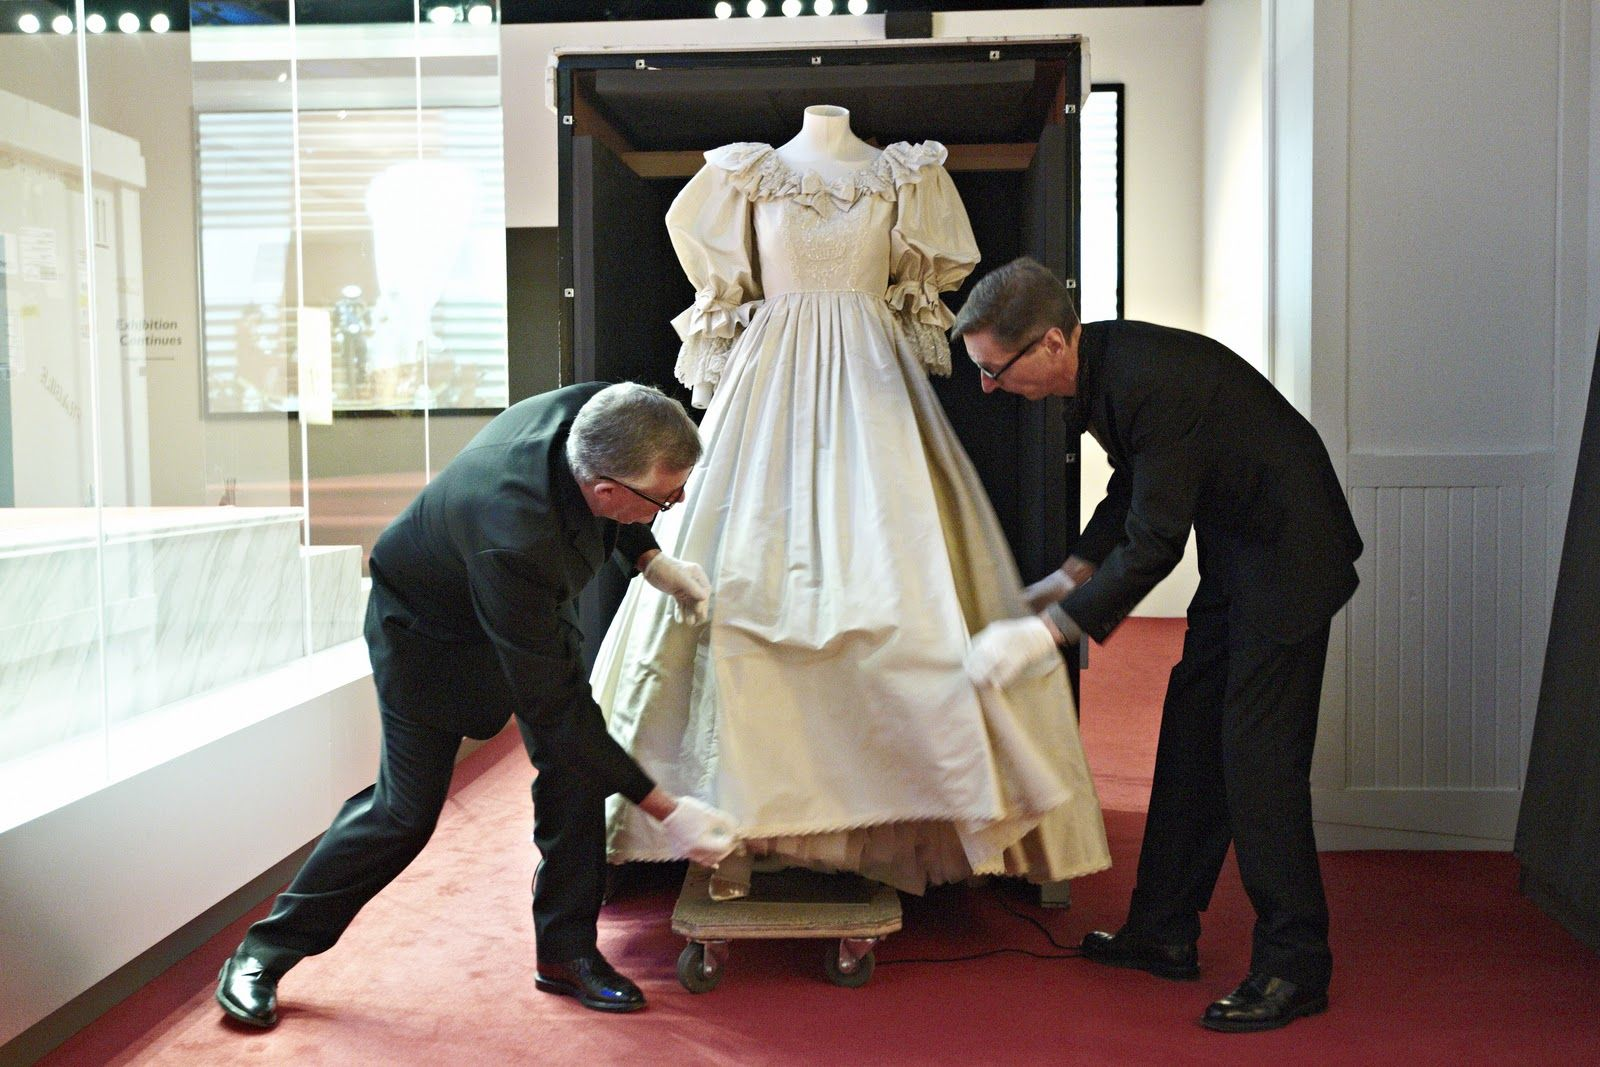 Princess Diana S Wedding Dress Travelled To The Mall Of America In Bloomington To Be Th Princess Diana Wedding Dress Diana Wedding Dress Prince Charles Wedding